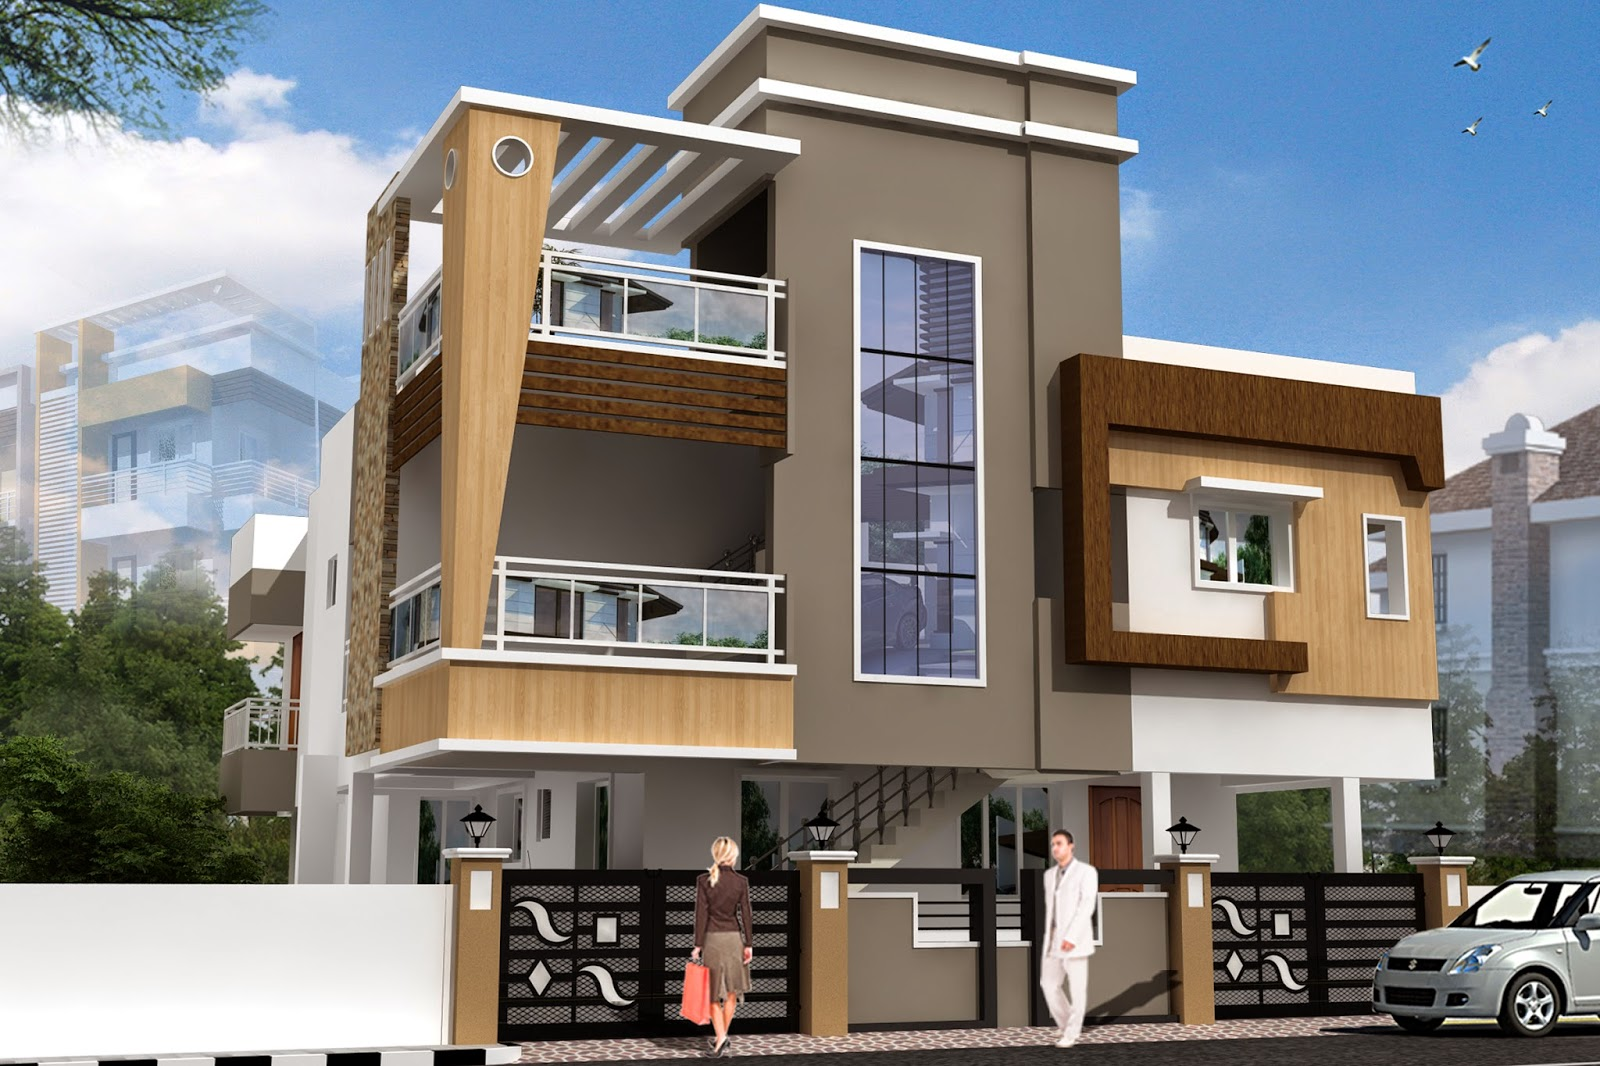 luckydesigners: 3D Elevation Residential Building